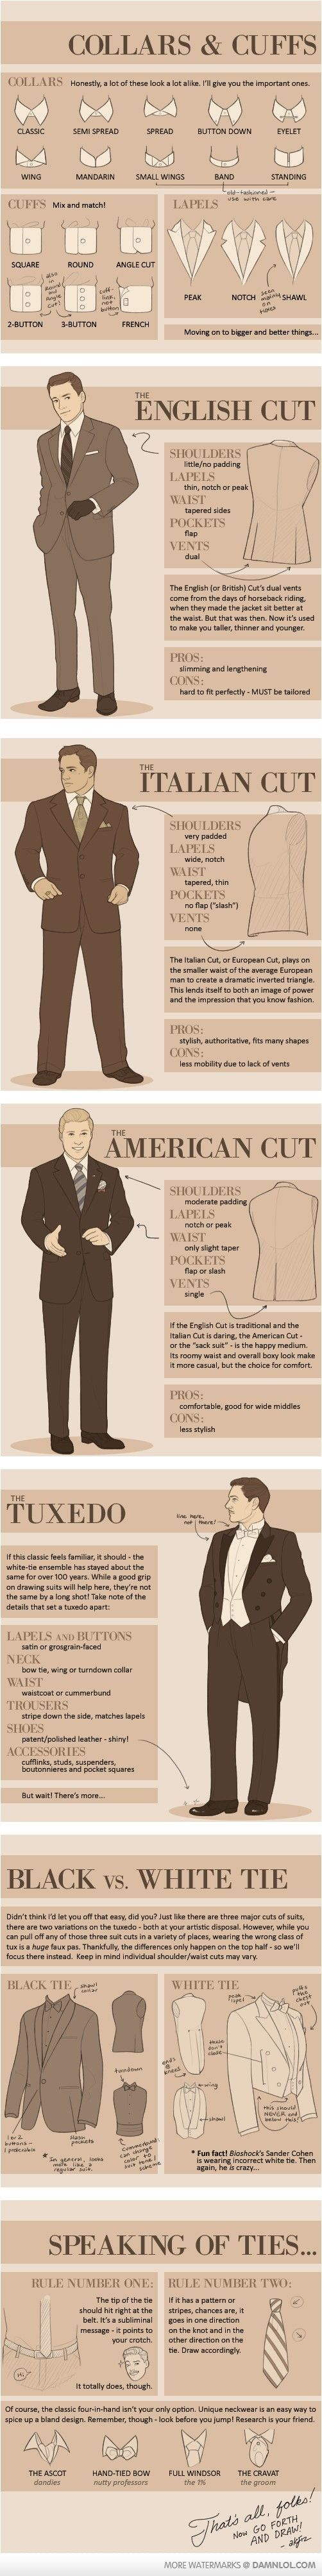 A guide to different cuts and styles in tailoring.